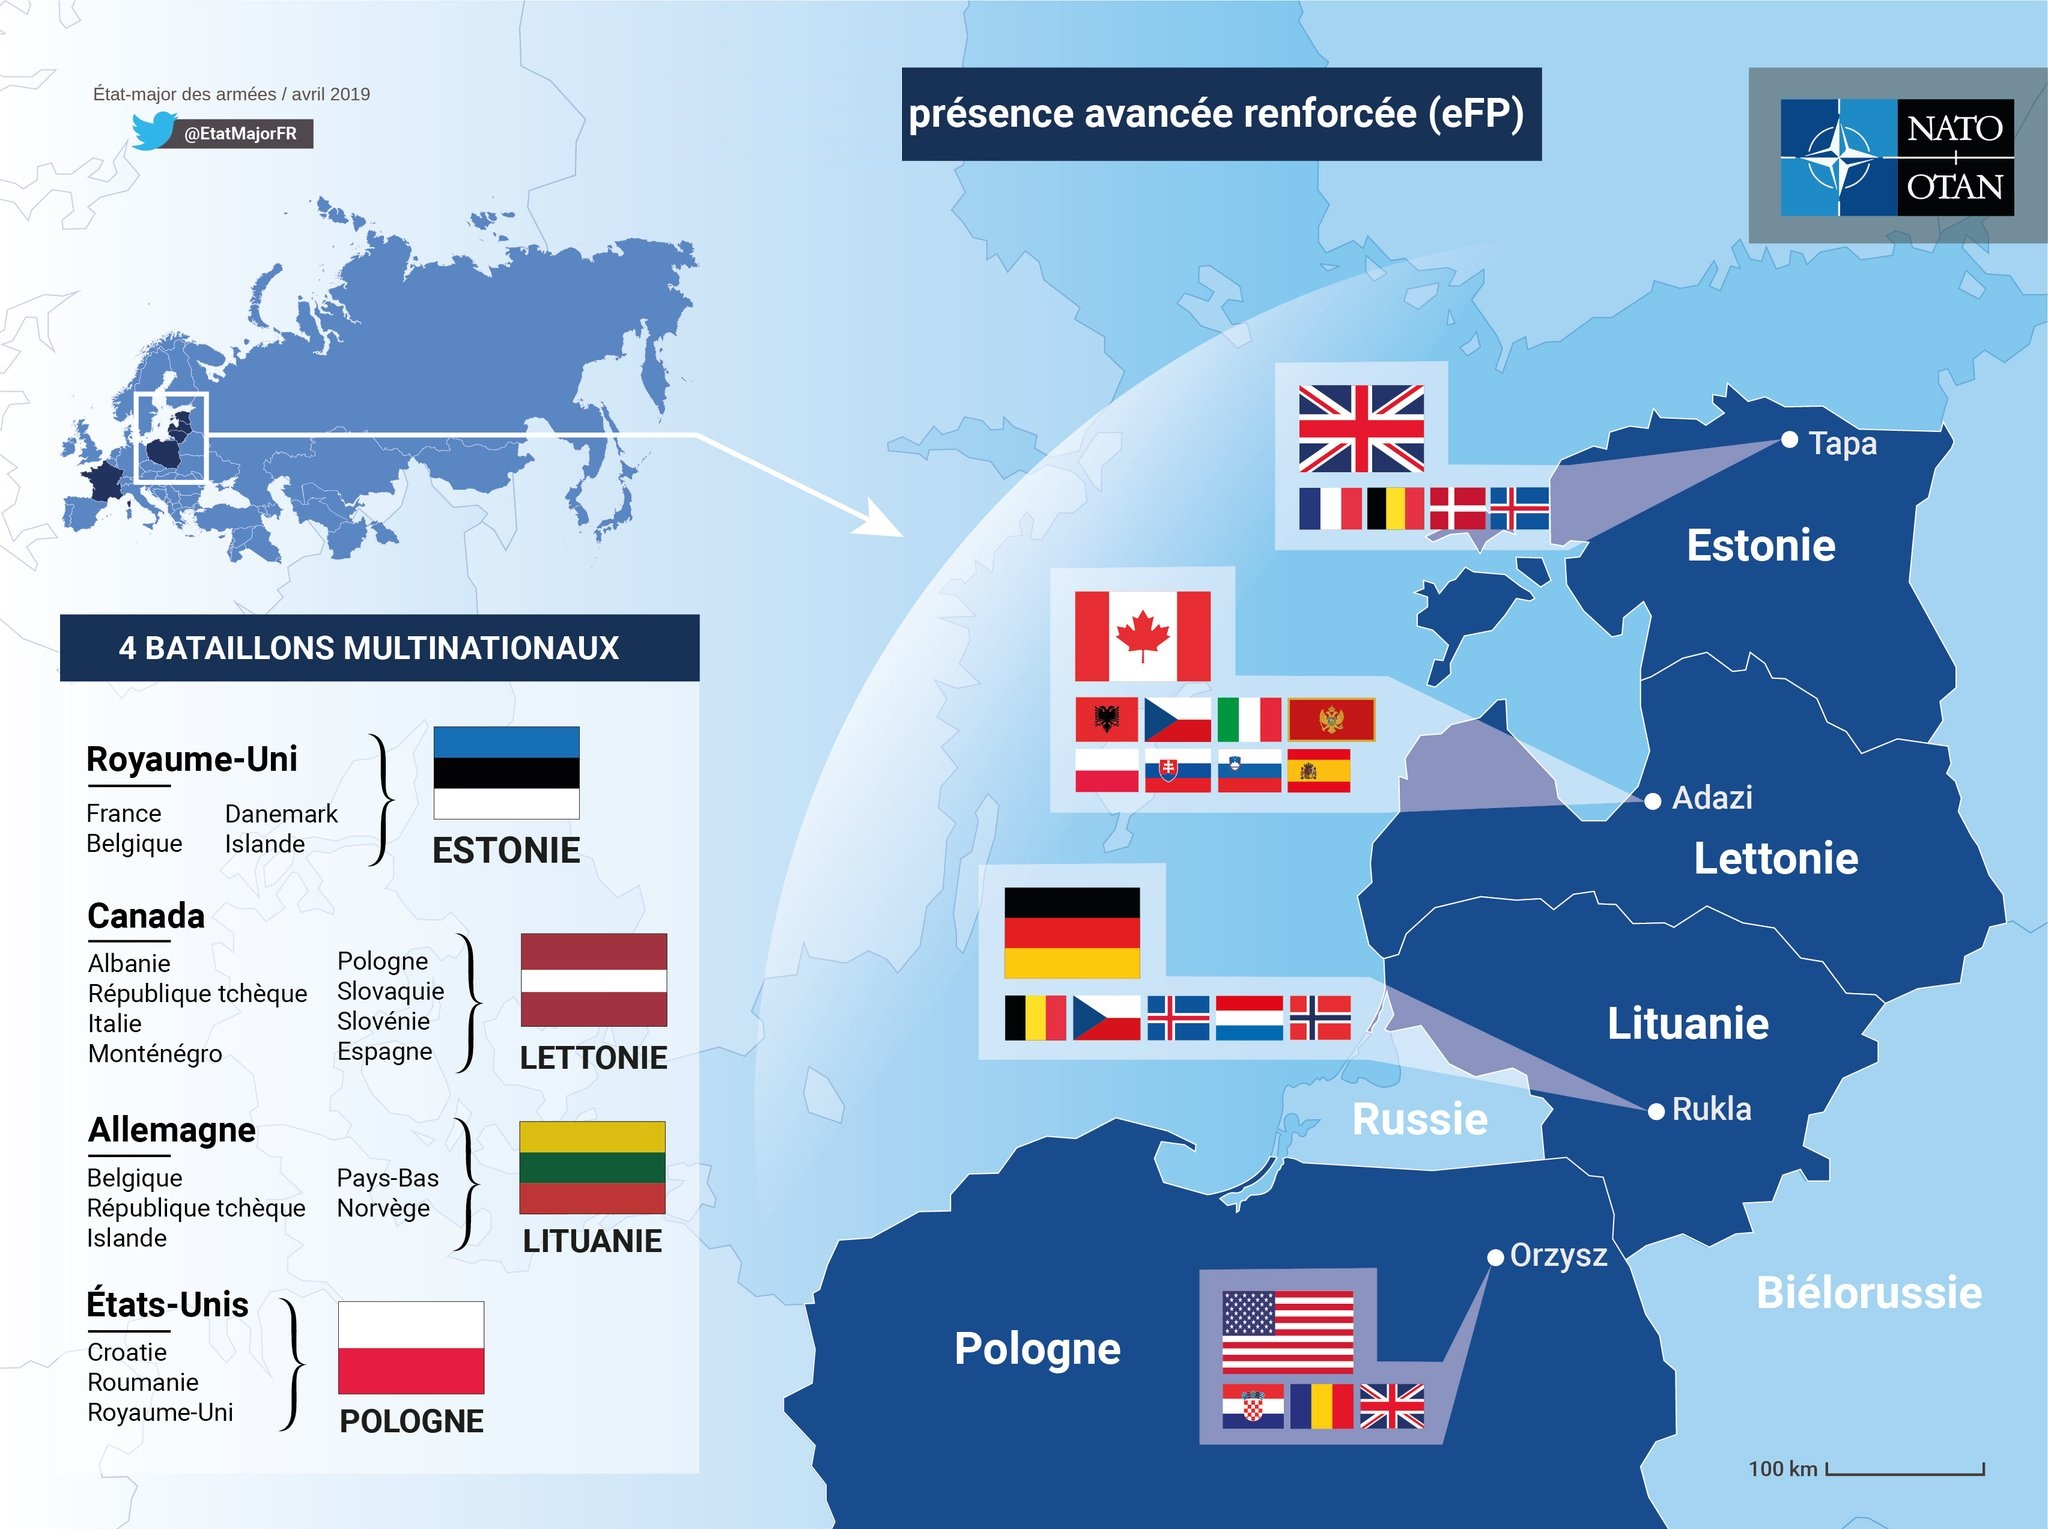 Forces involved in NATO's Enhanced Forward Presence as of April 2019 (NATO)